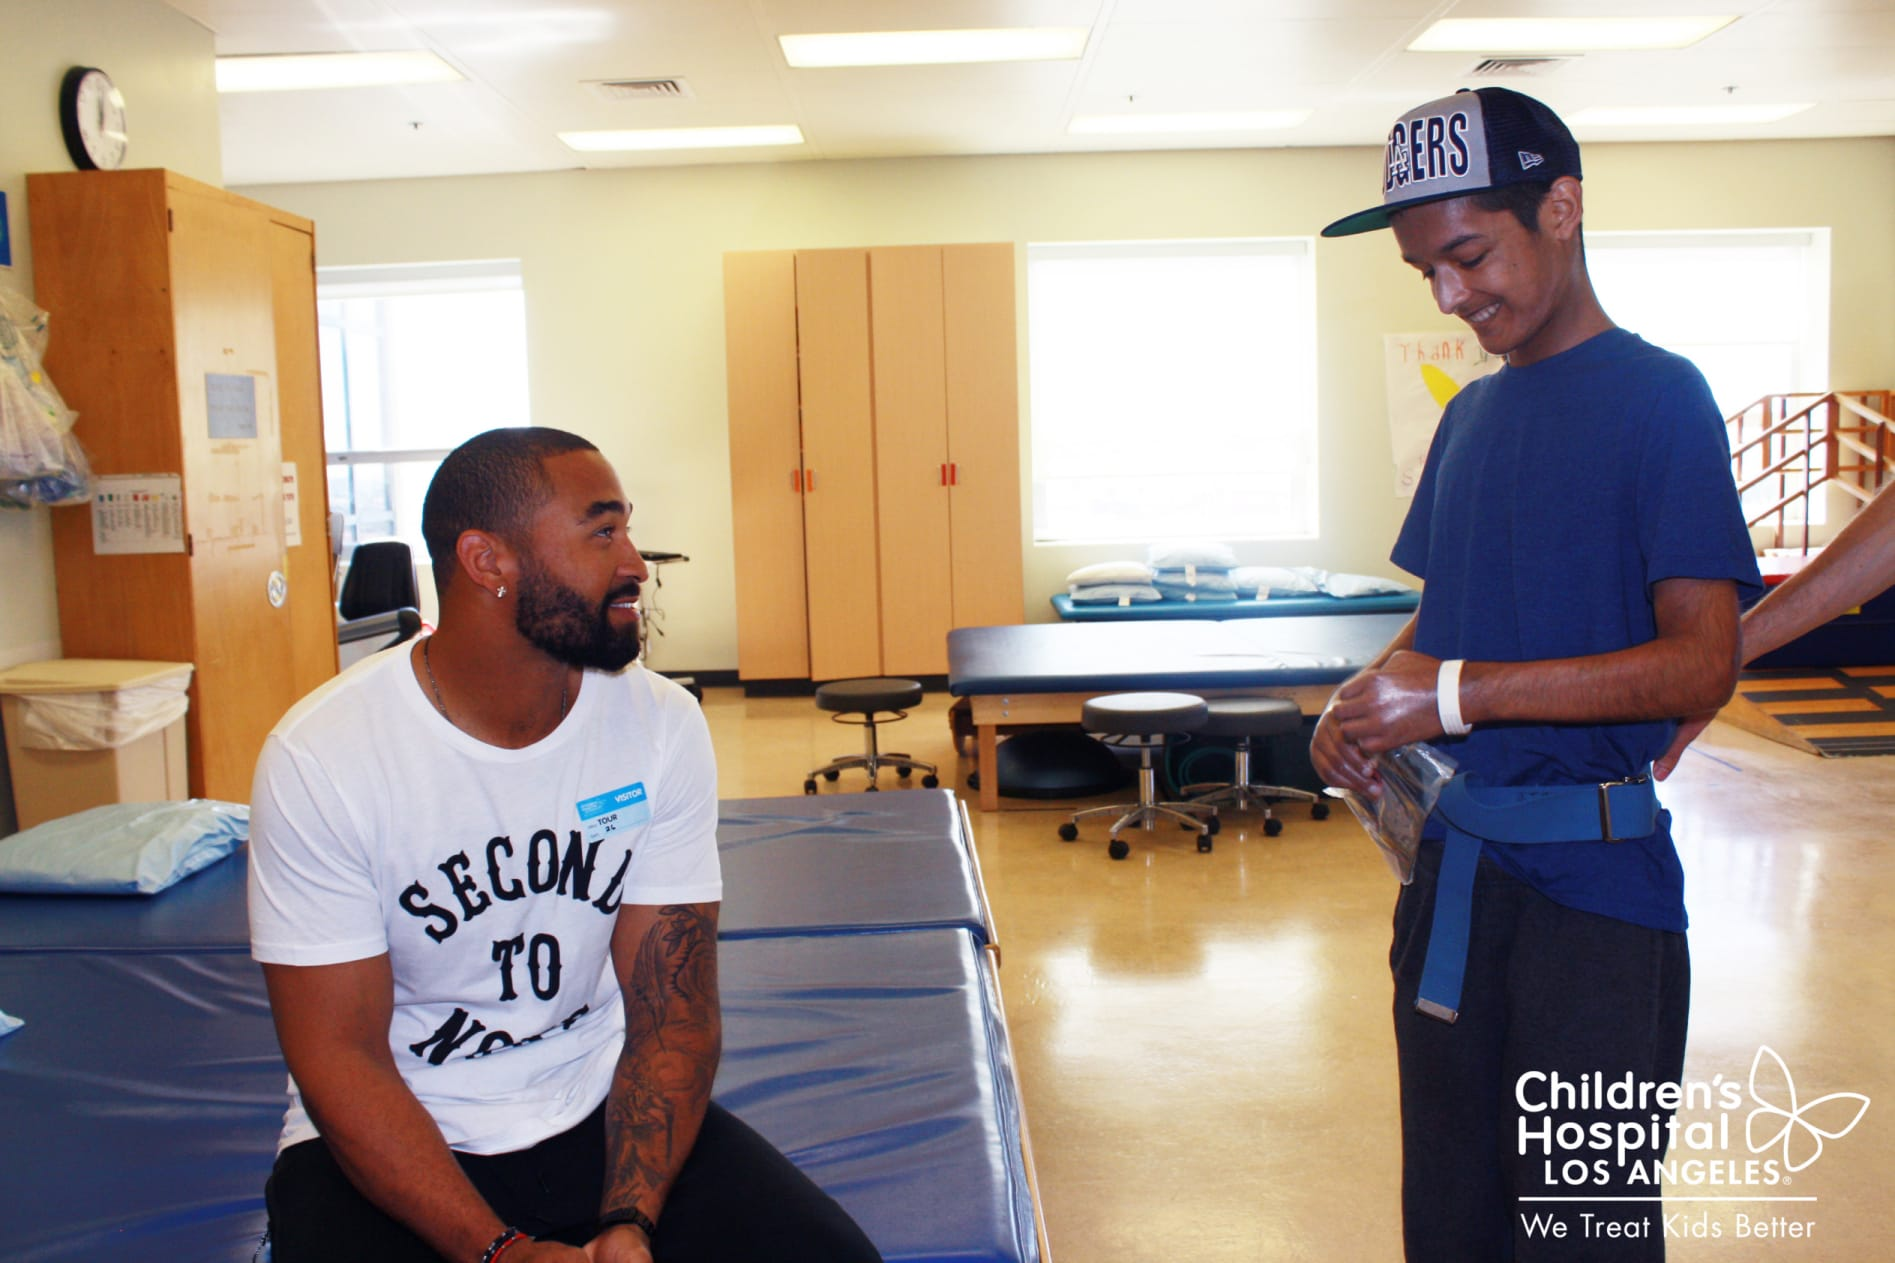 chla-dodgers-matt-kemp-and-patient.jpg